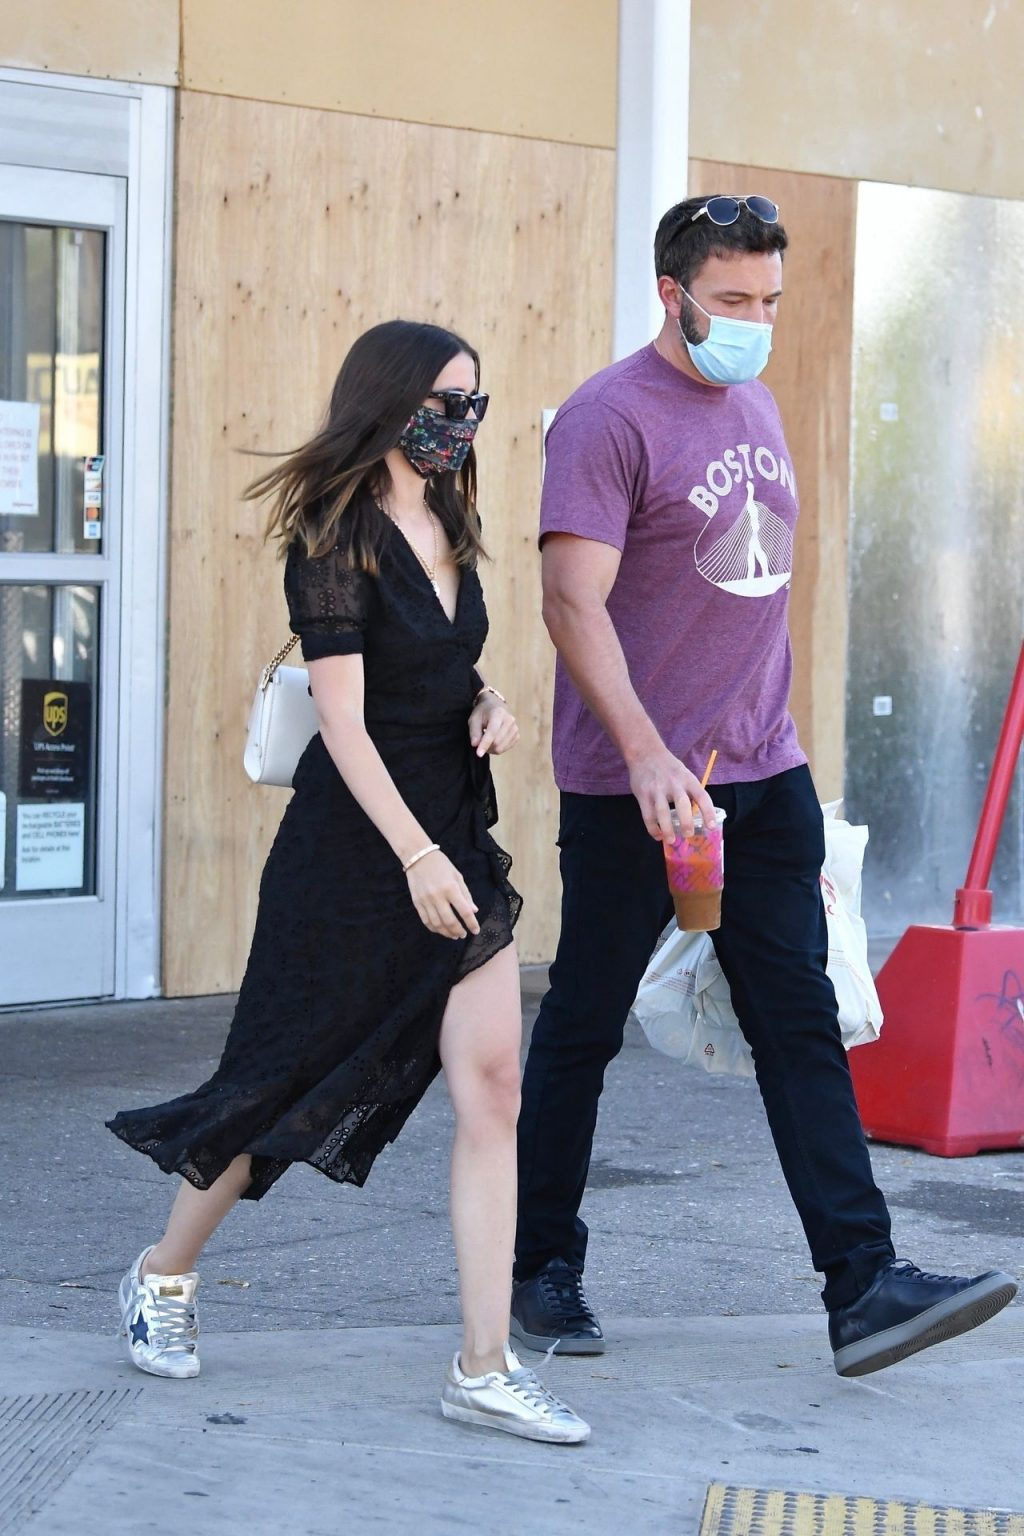 Ben Affleck & Ana de Armas Can't Keep Their Hands Off Each Other While Shopping (65 Photos)